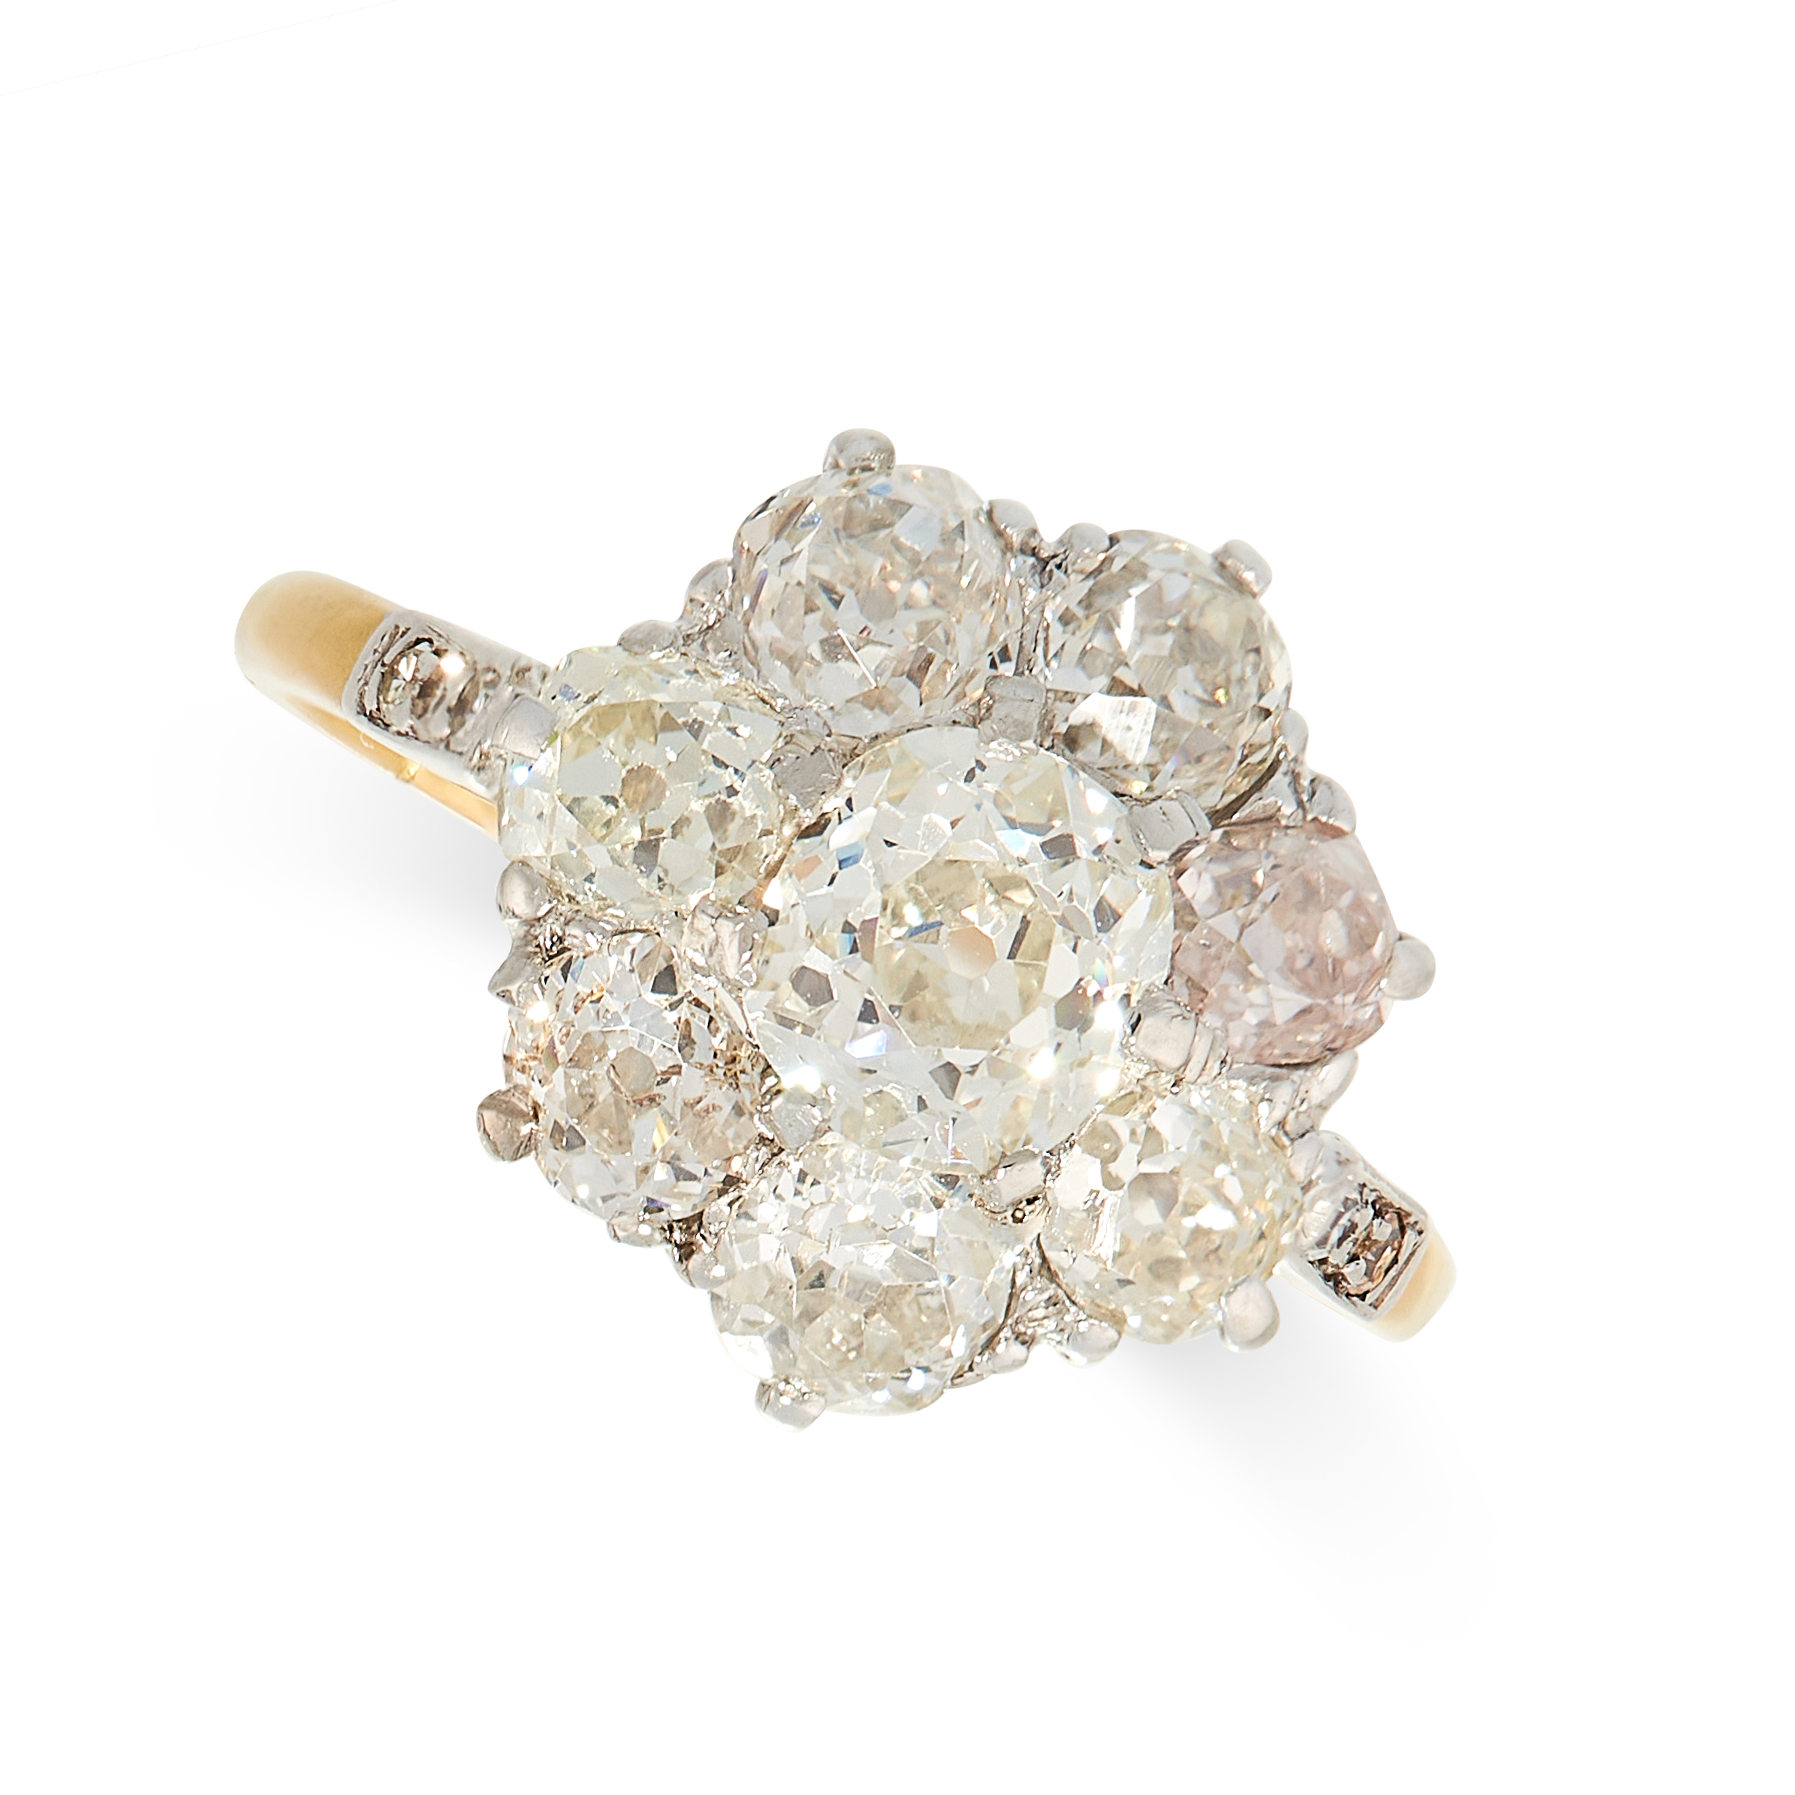 AN ANTIQUE DIAMOND CLUSTER RING, EARLY 20TH CENTURY in 18ct yellow gold, set with a central old